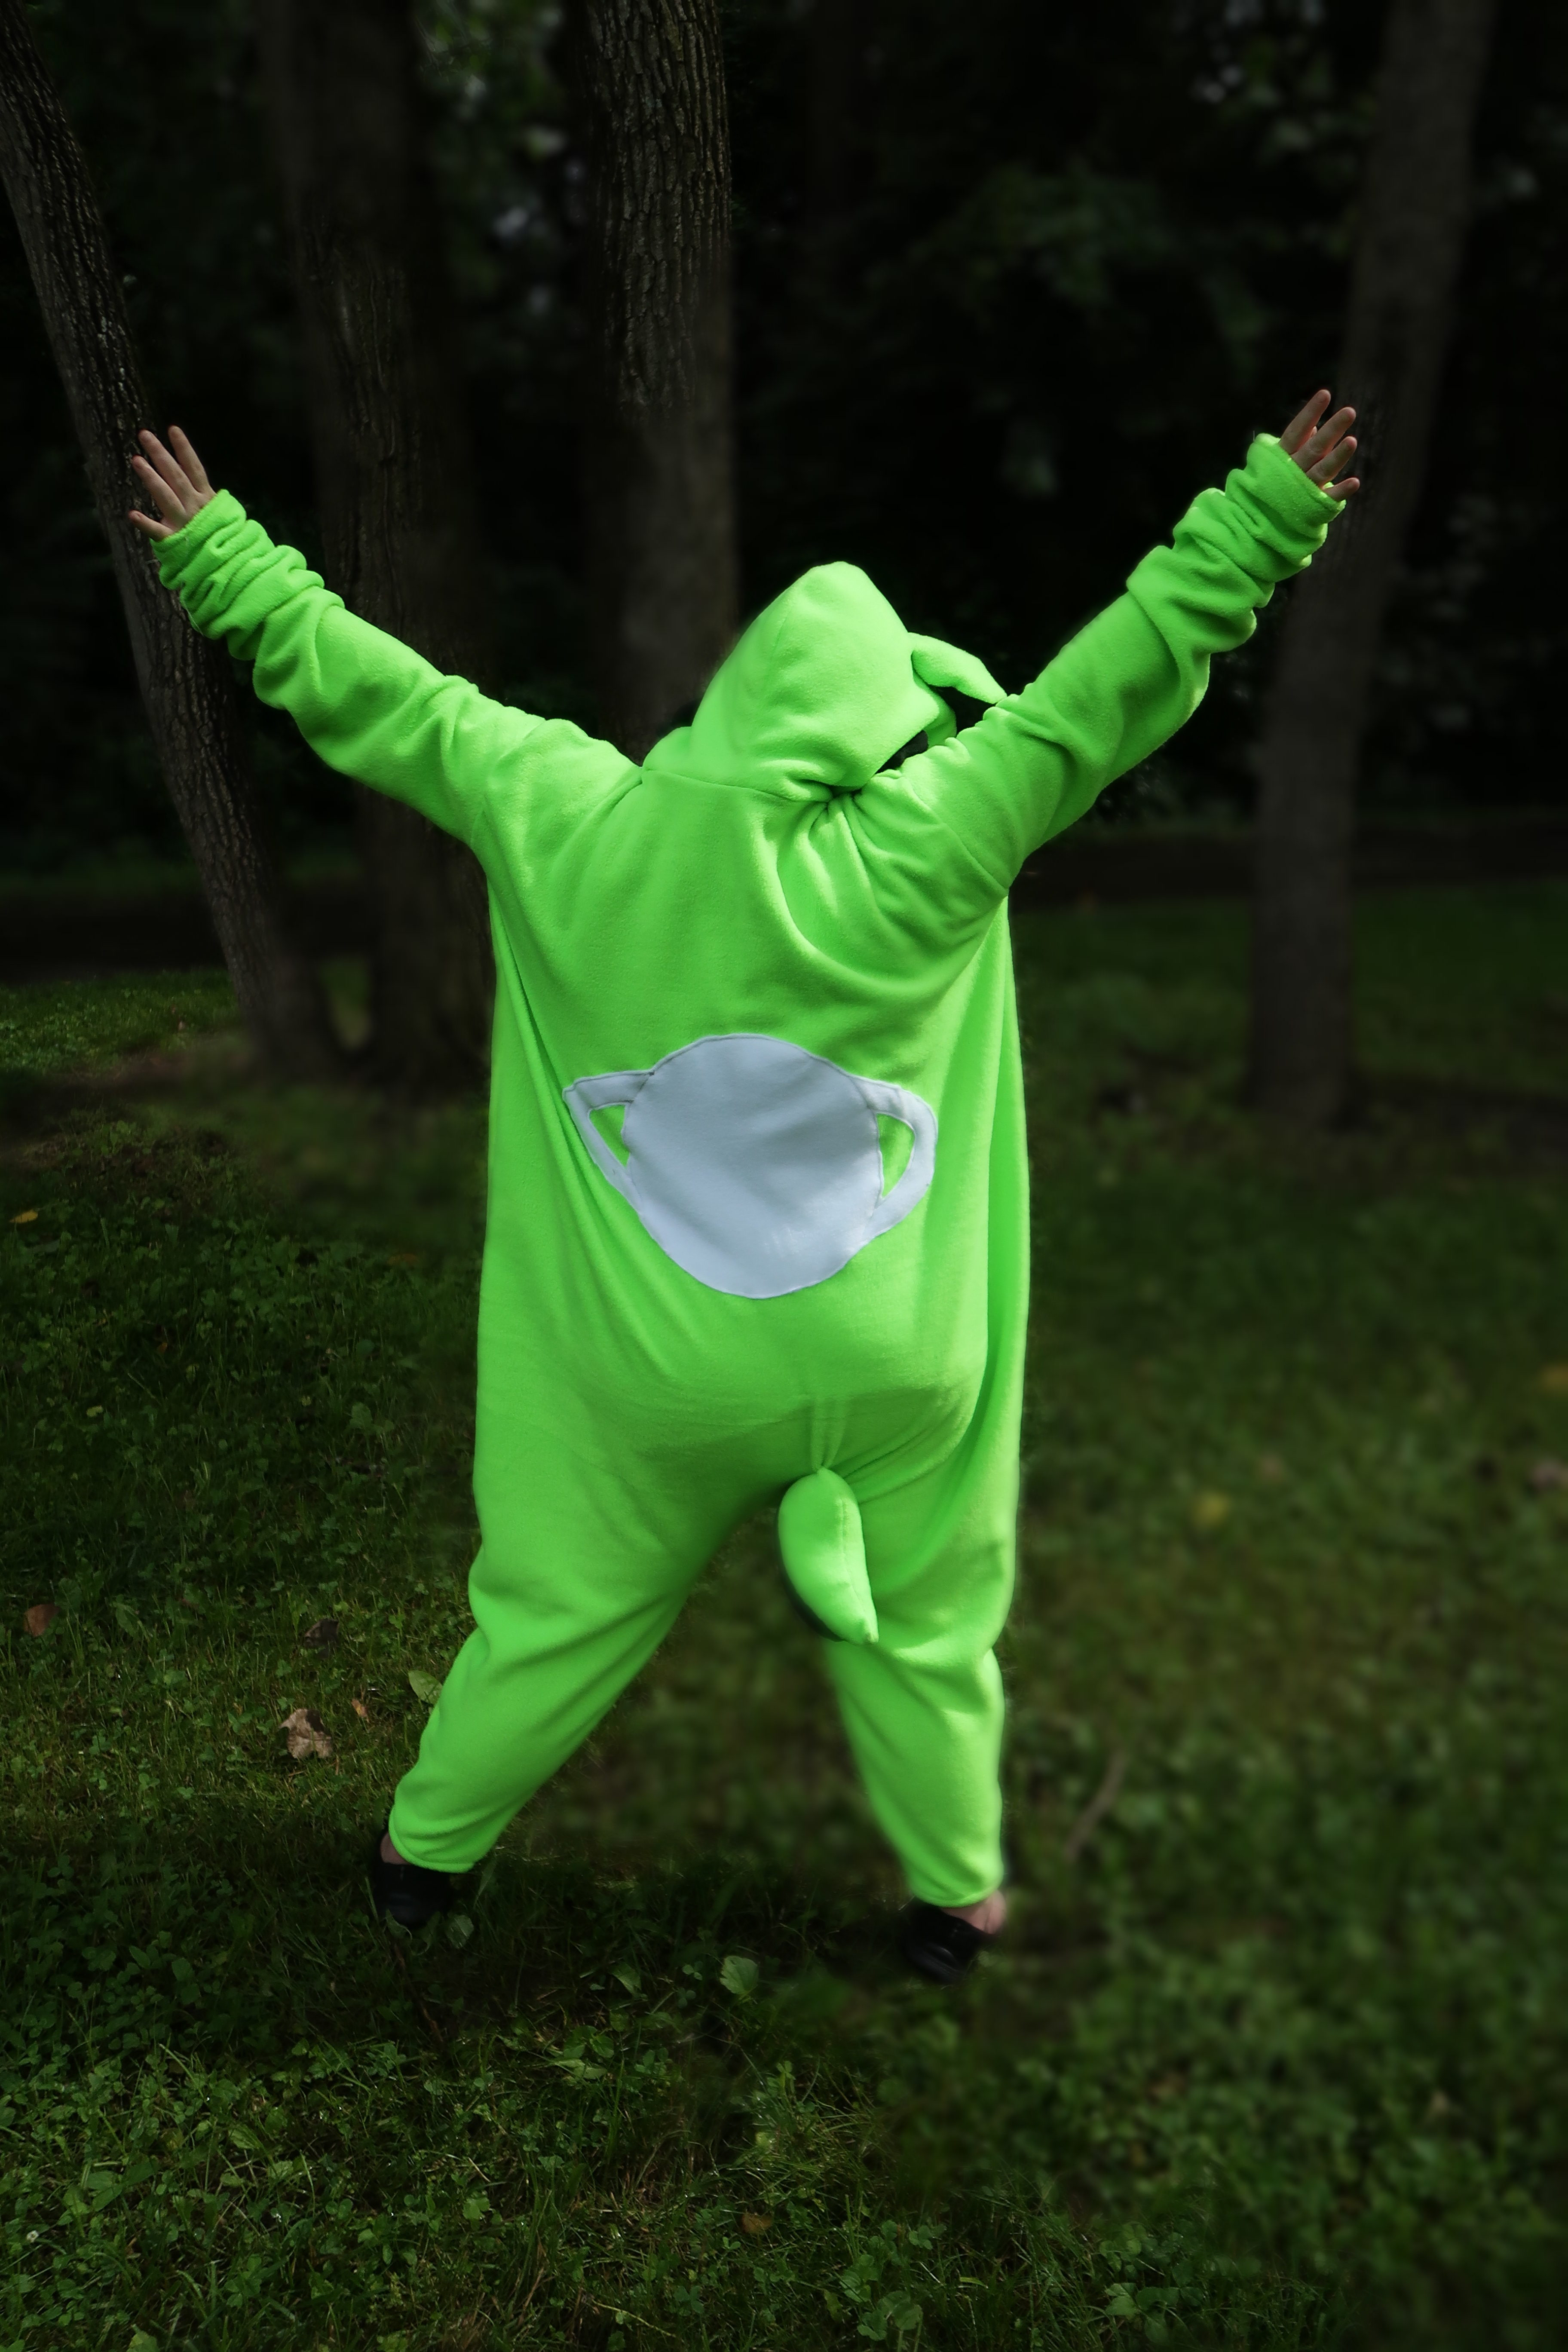 obletop-promotional-phtography-kigu-full-body-back-by-connor-goodwolf